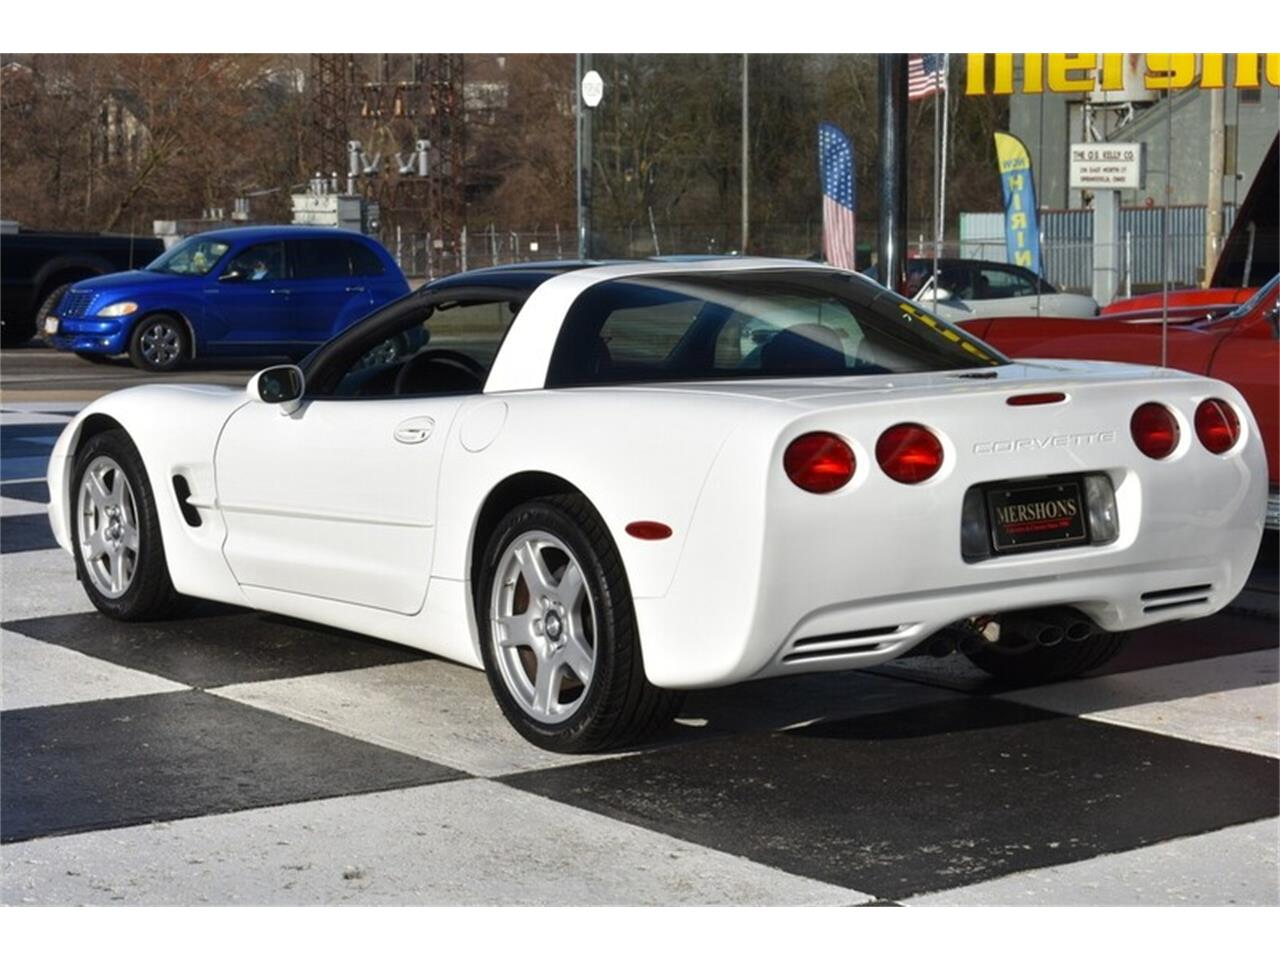 Large Picture of 1997 Corvette - $18,900.00 Offered by Mershon's - PS0Z